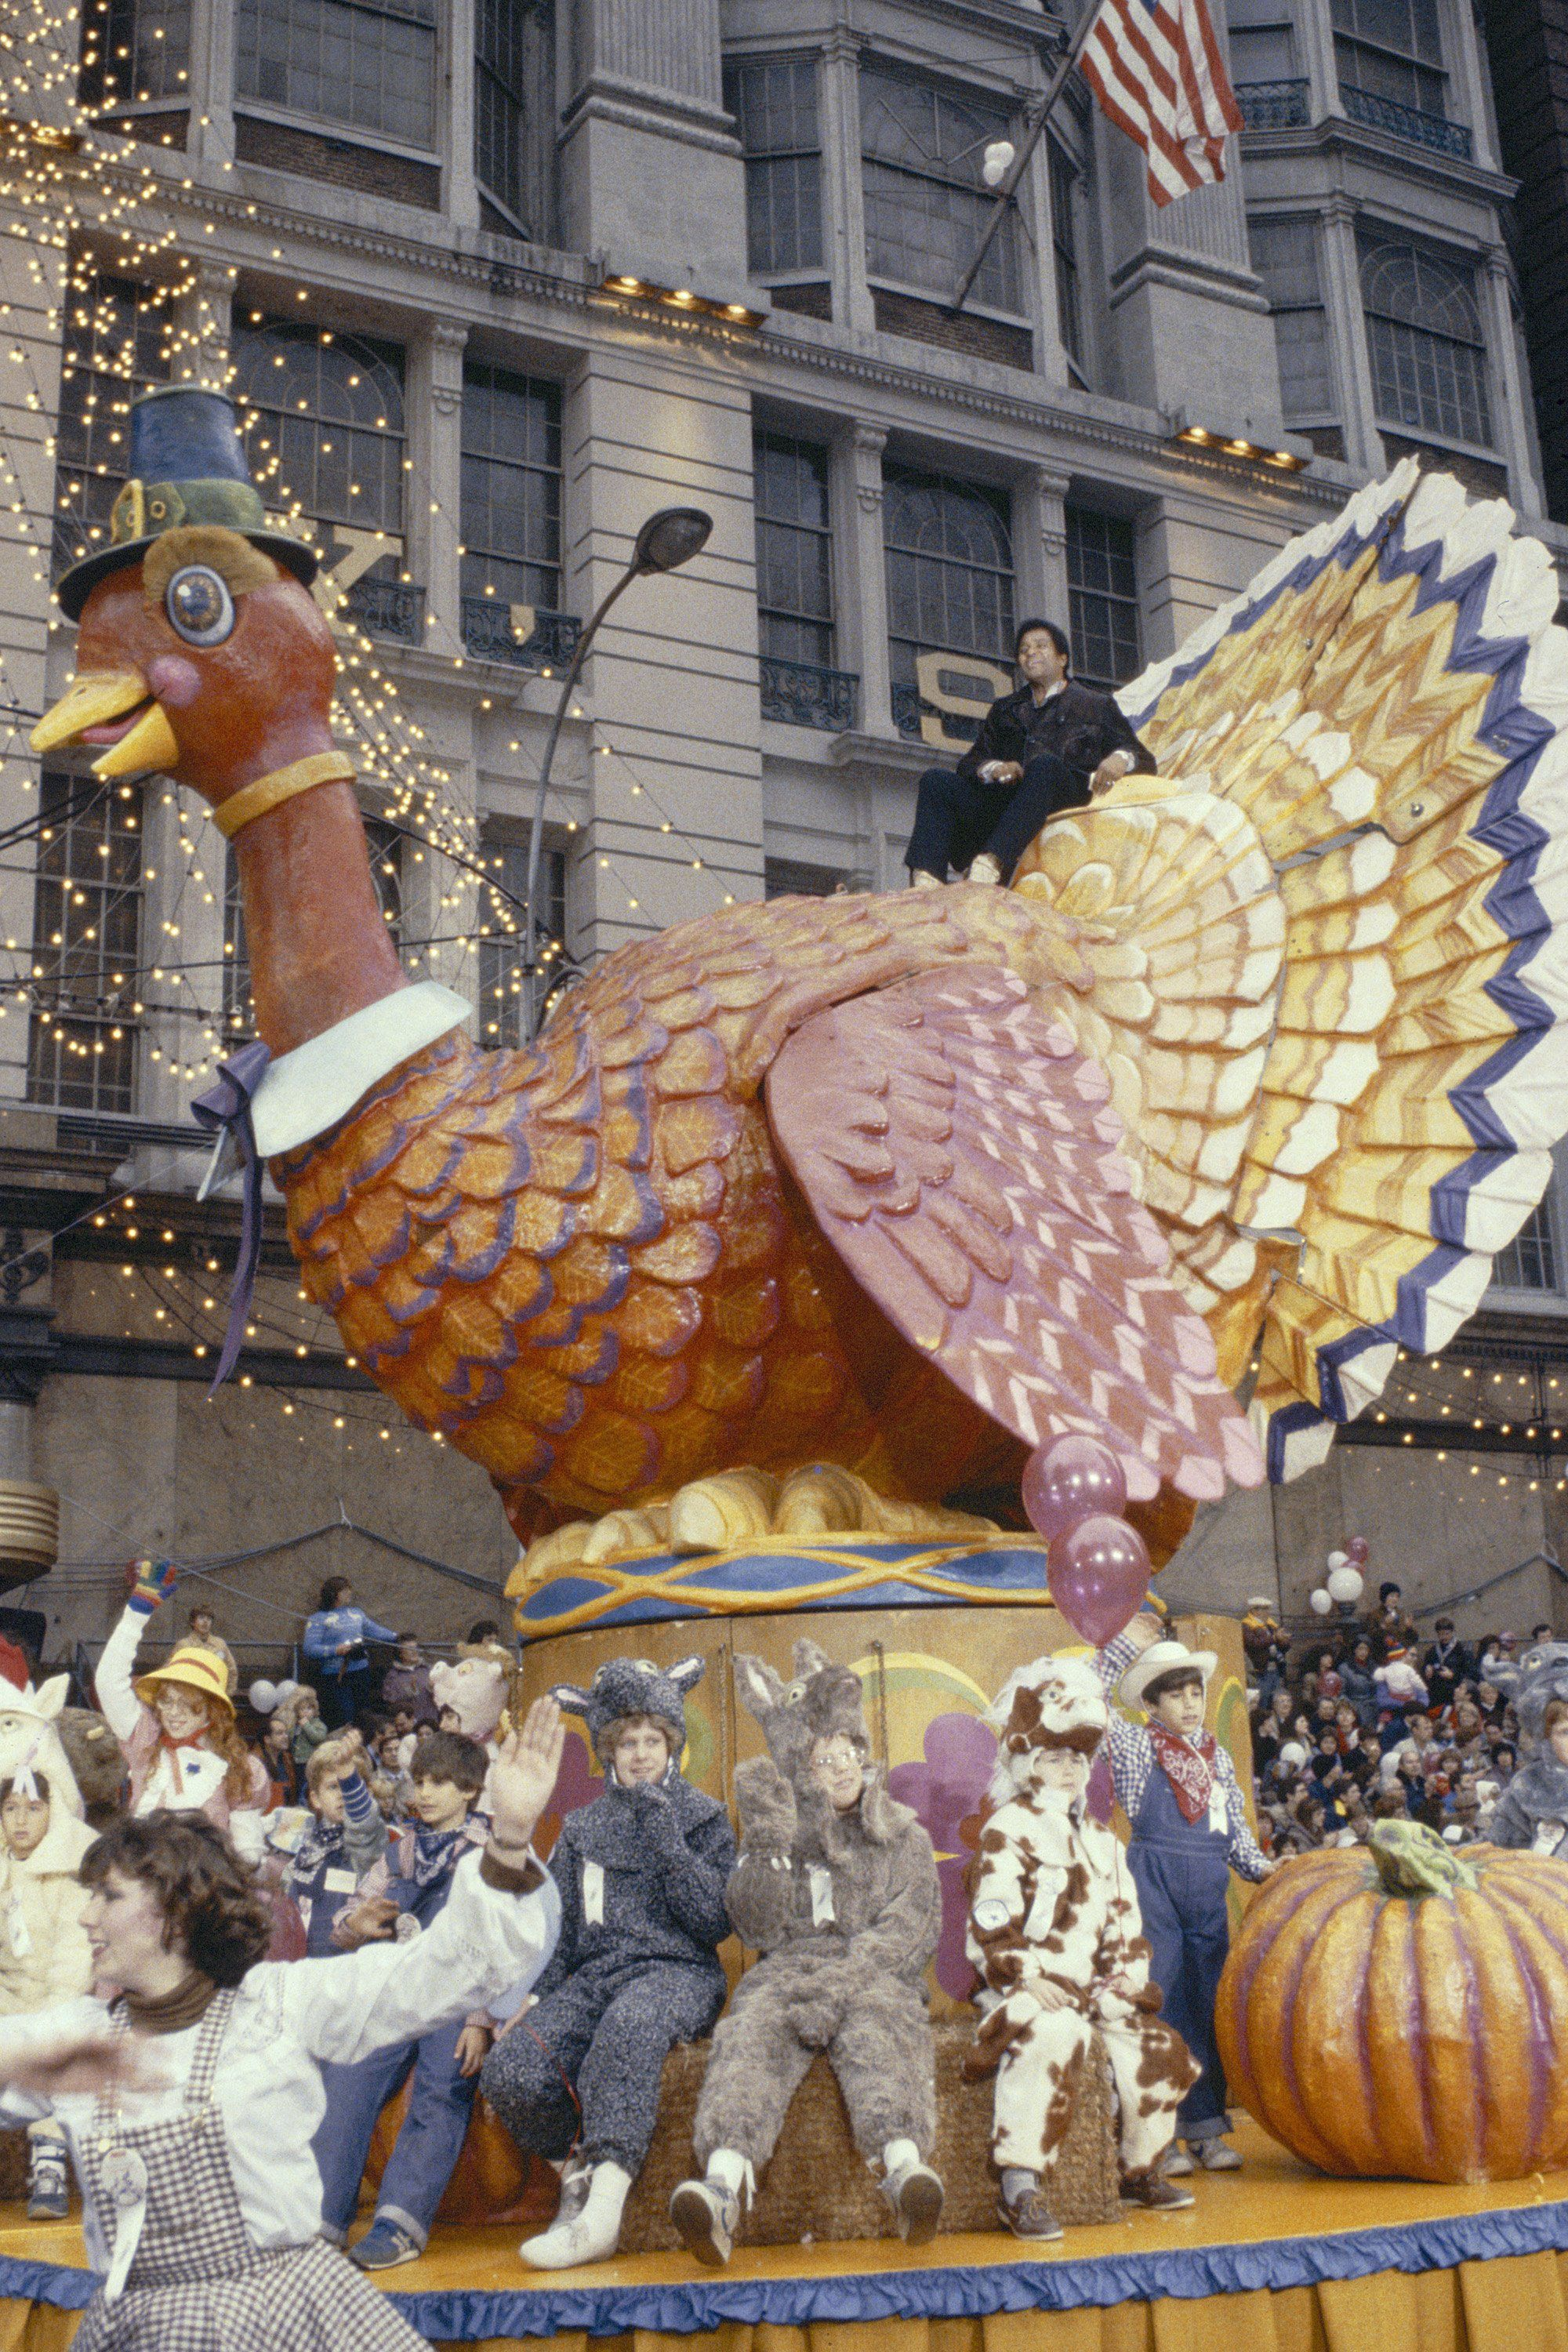 The History Of The Macy's Thanksgiving Day Parade In